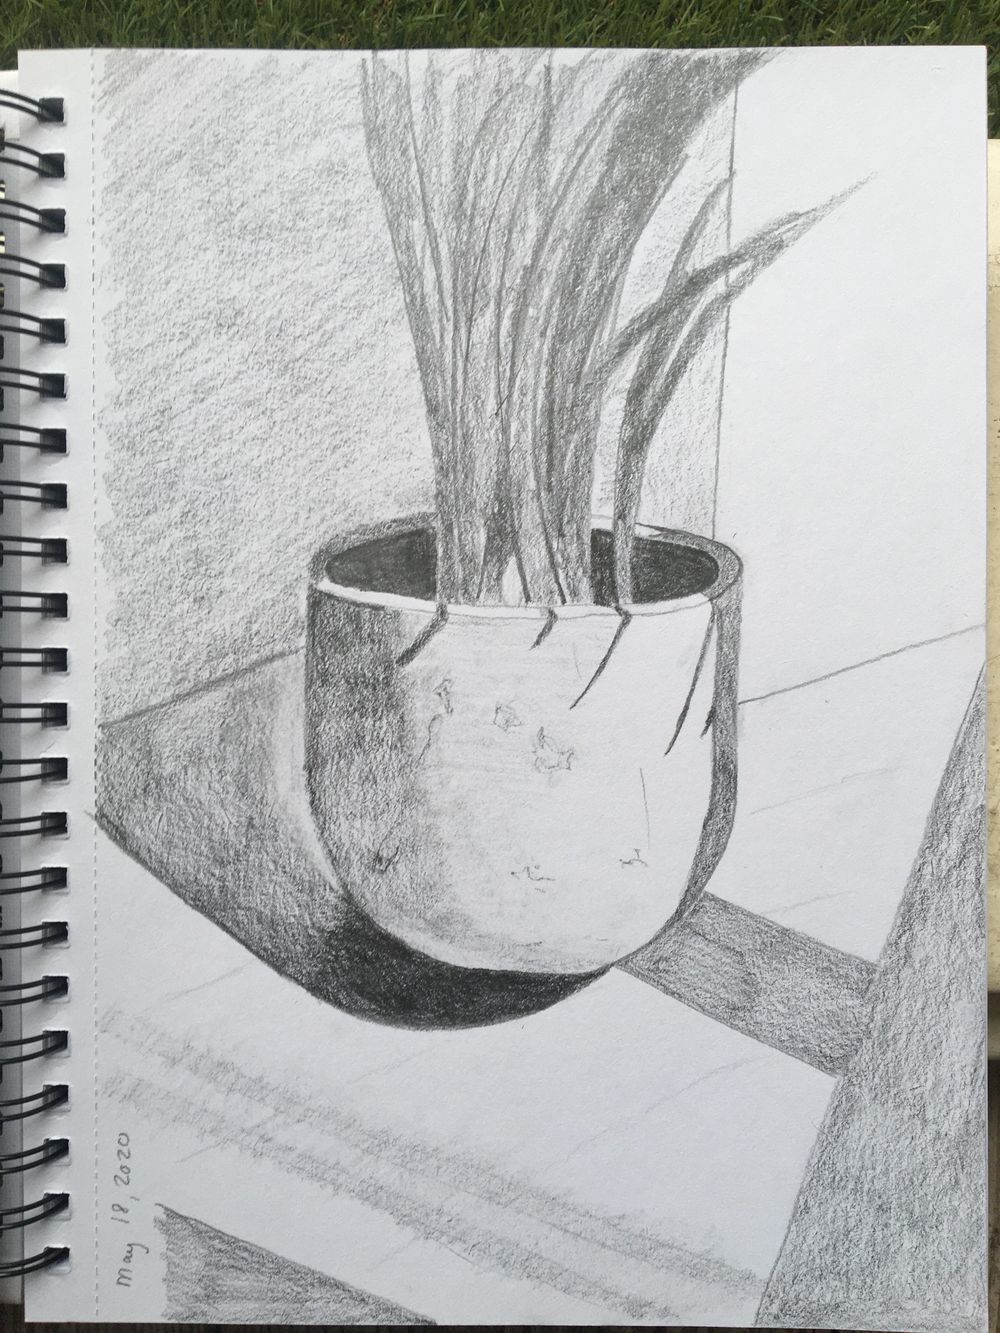 Beginner Work - image 2 - student project